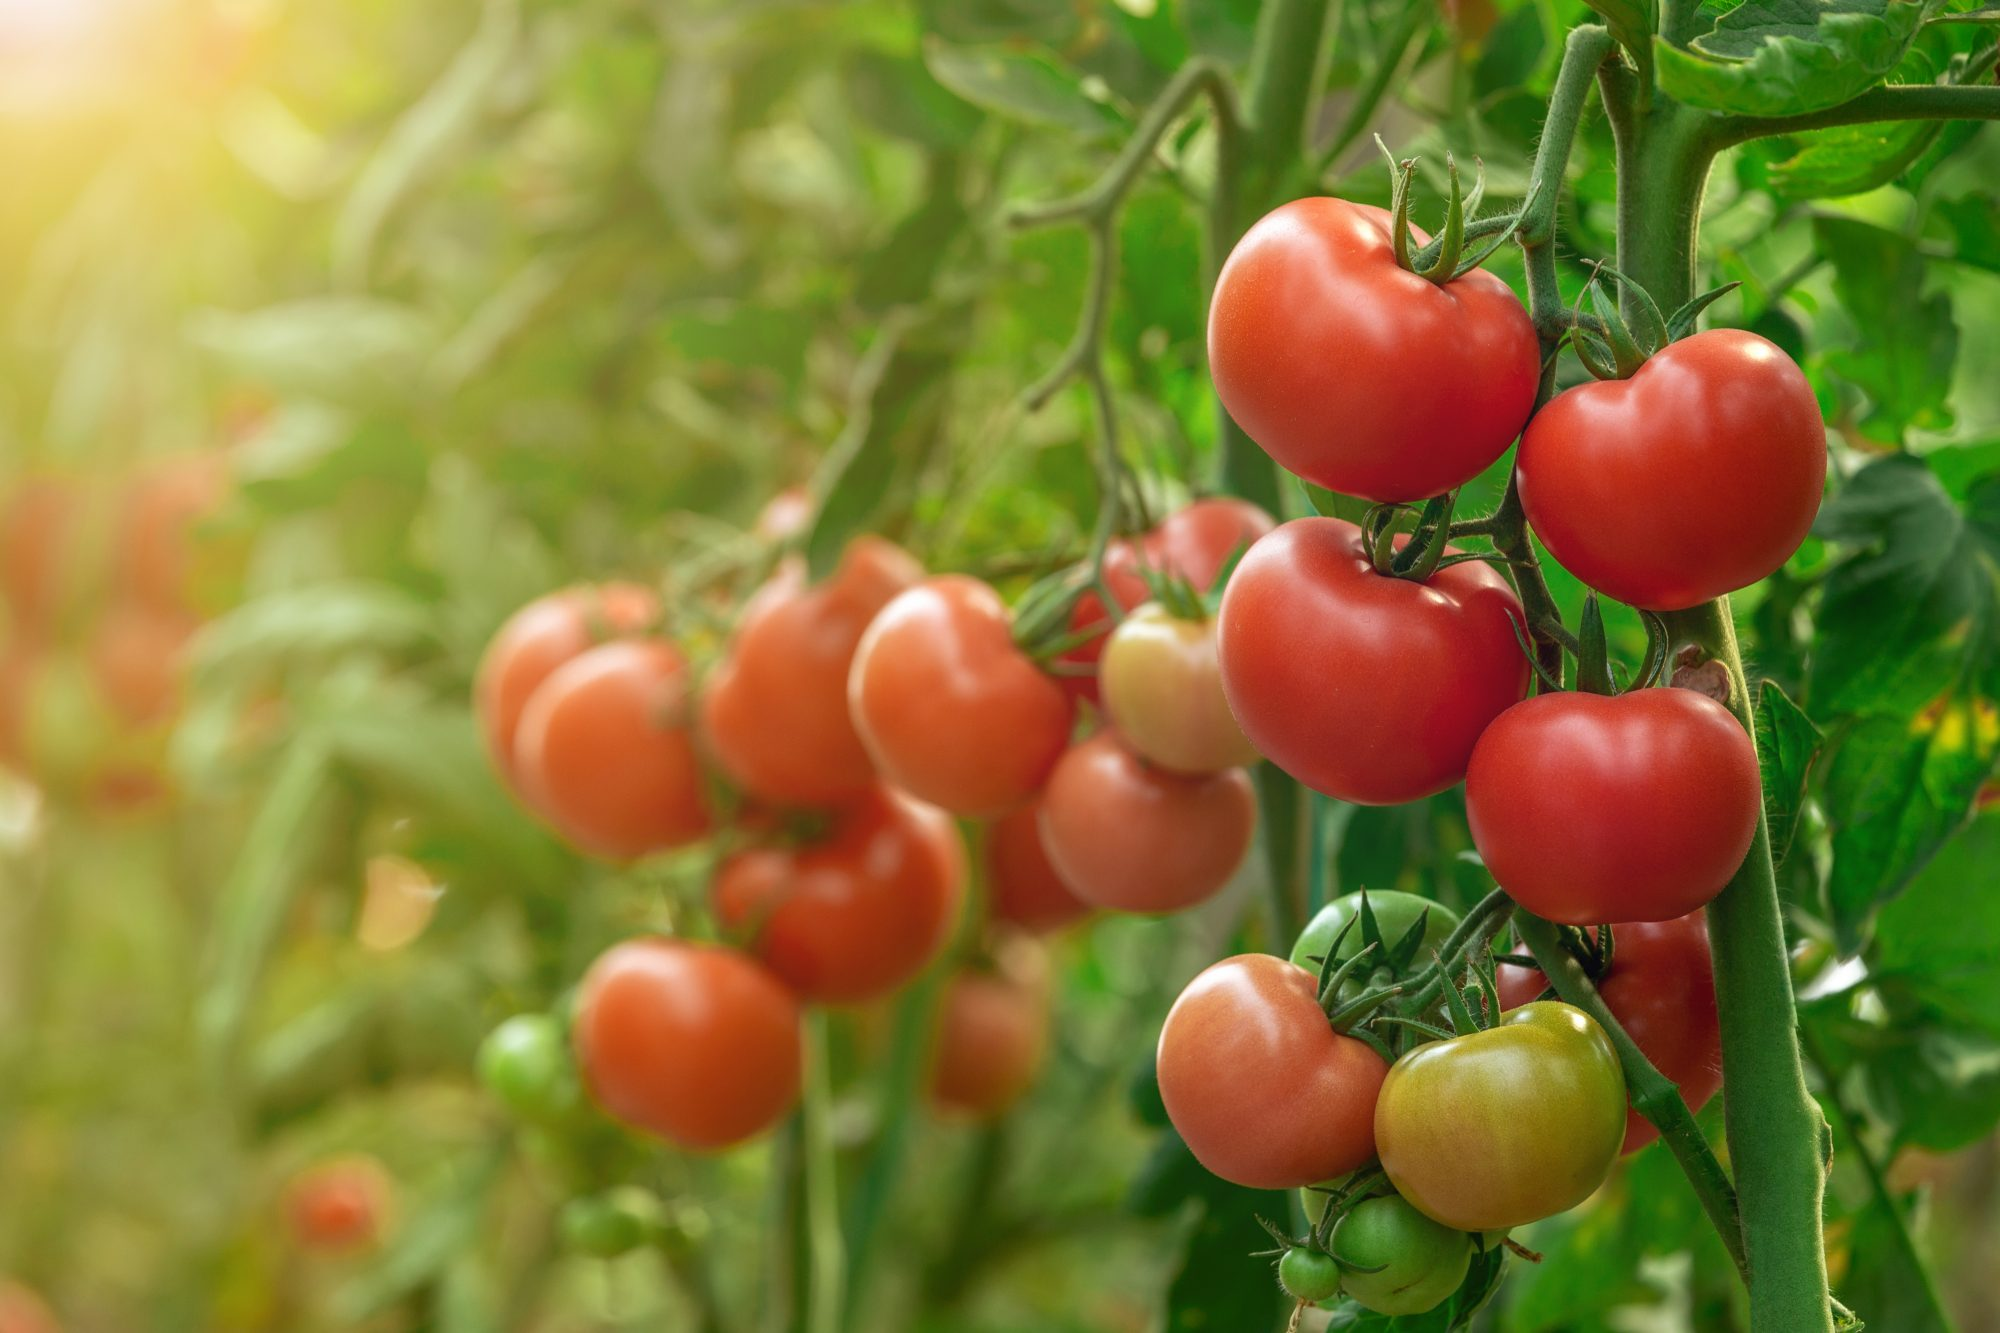 tomatoes gwoing on vine